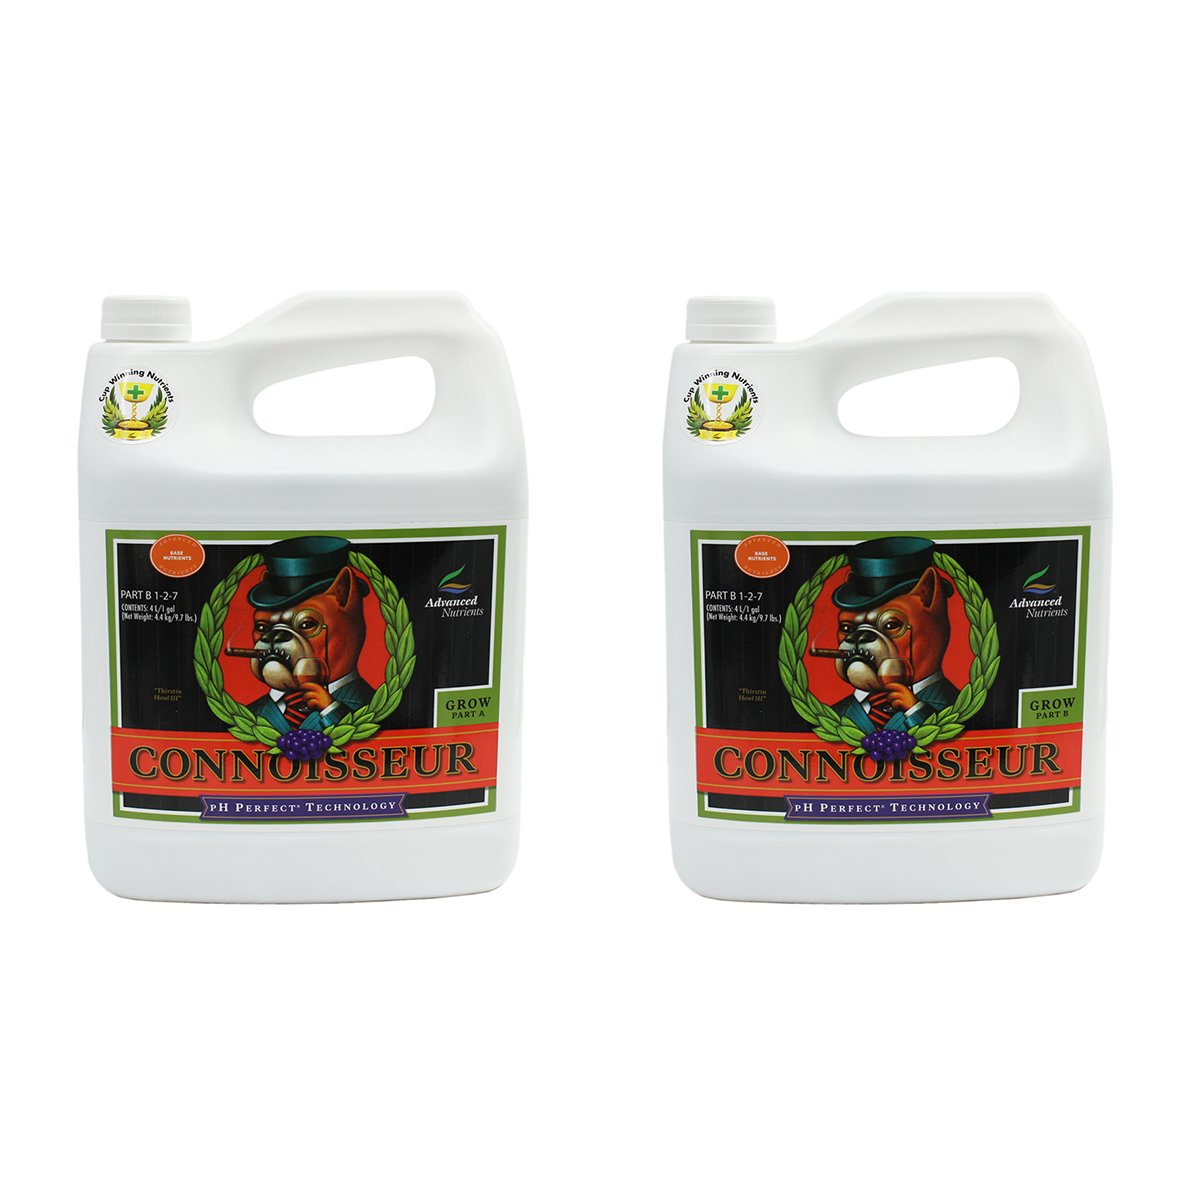 Advanced Nutrients pH Perfect Connoisseur Grow Part A+B Soil Amendments, 4 L by Advanced Nutrients